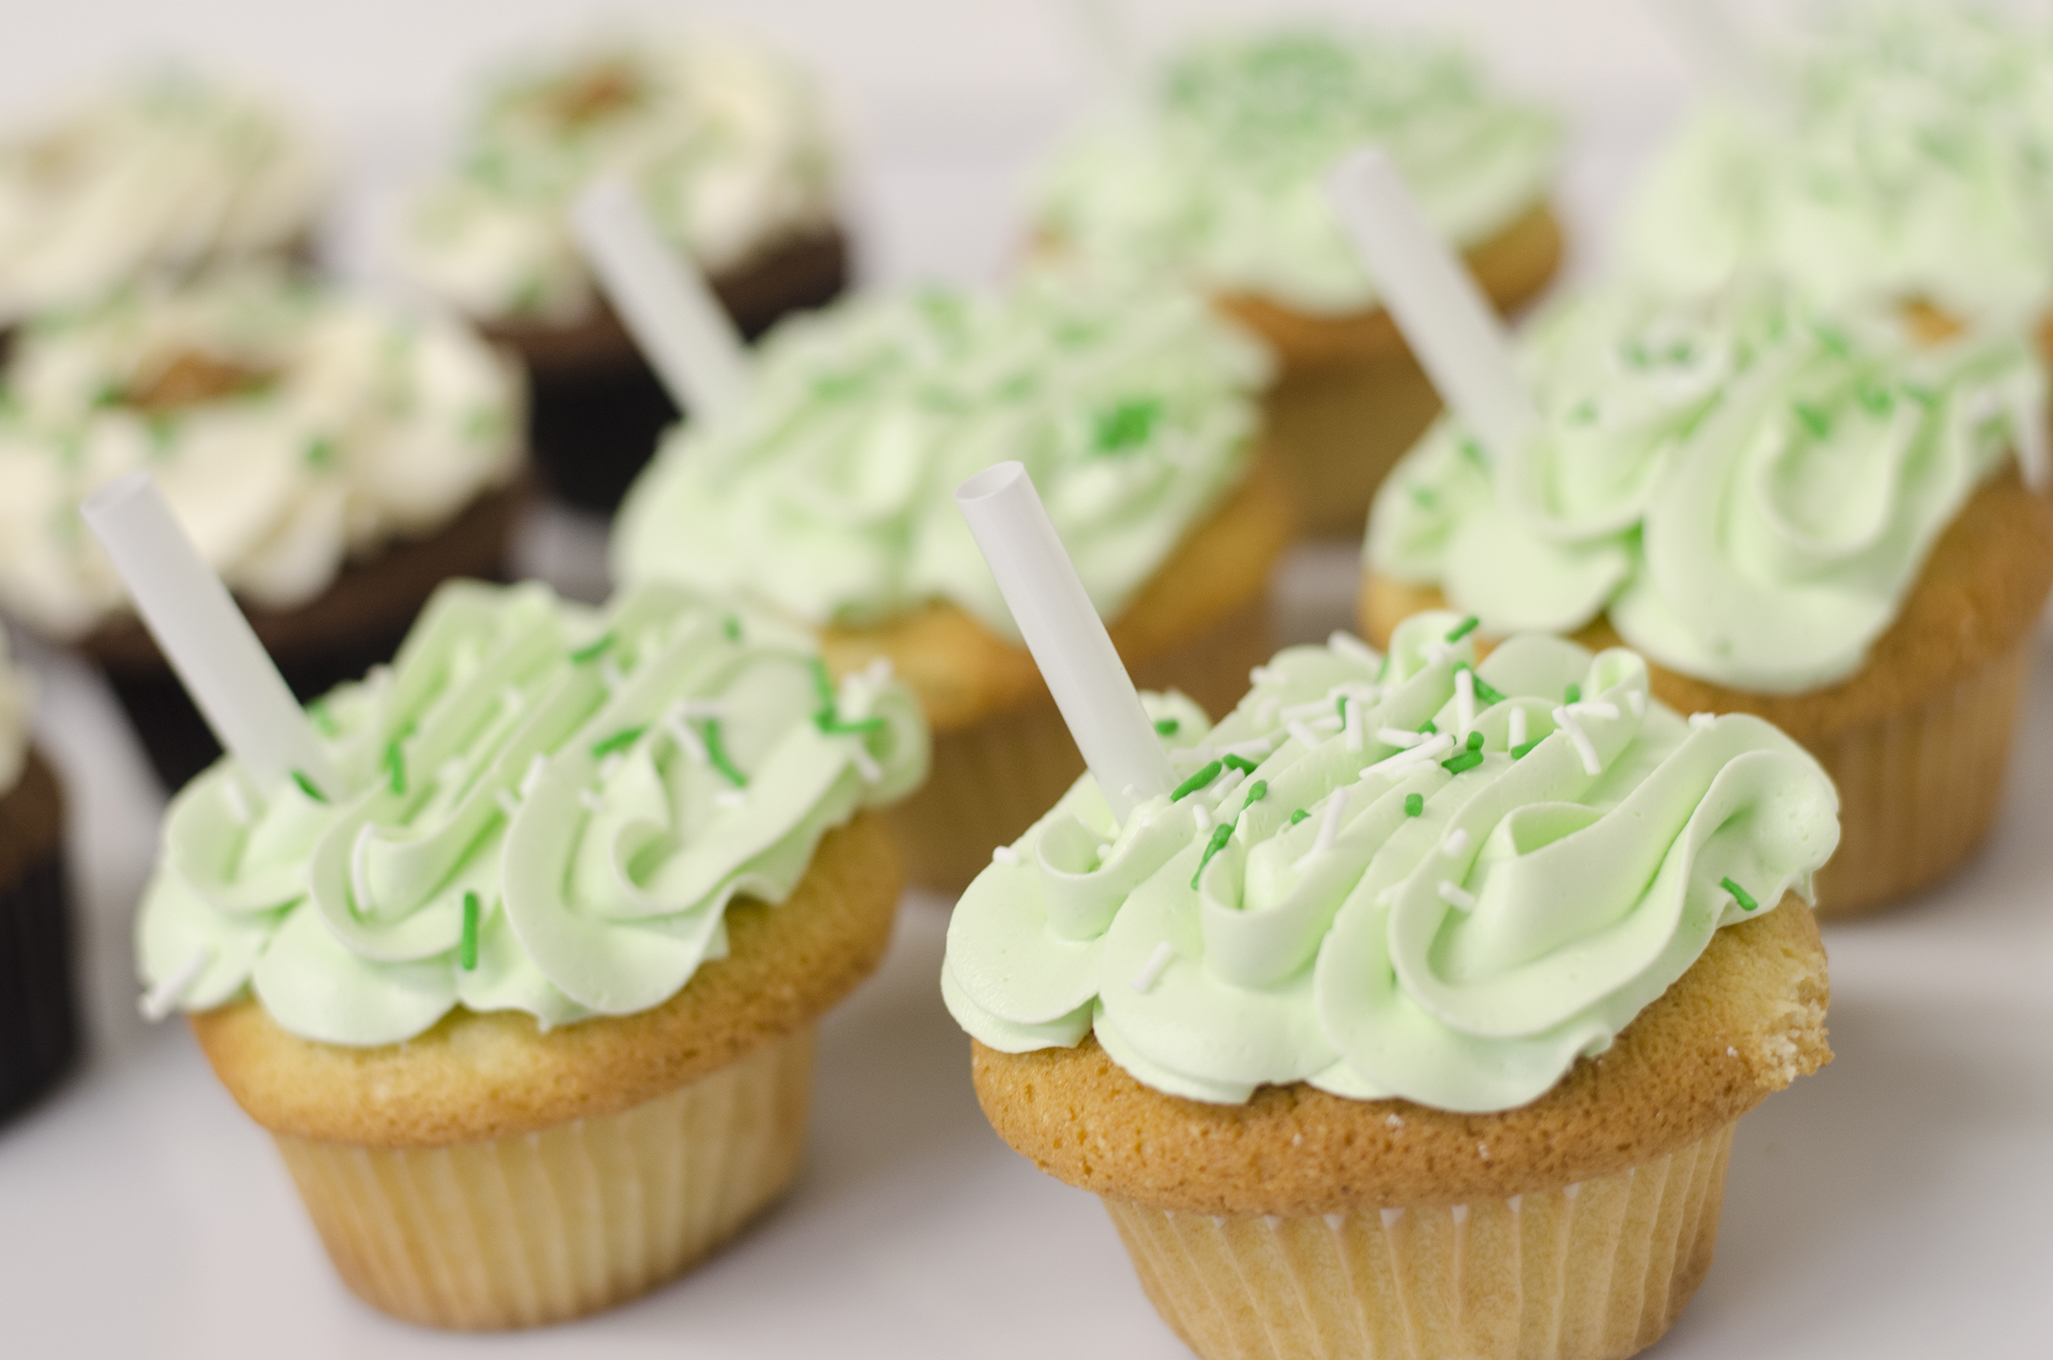 Shamrock Shake cupcakes at Sweet Revenge Bake Shop in Windsor, Ontario.